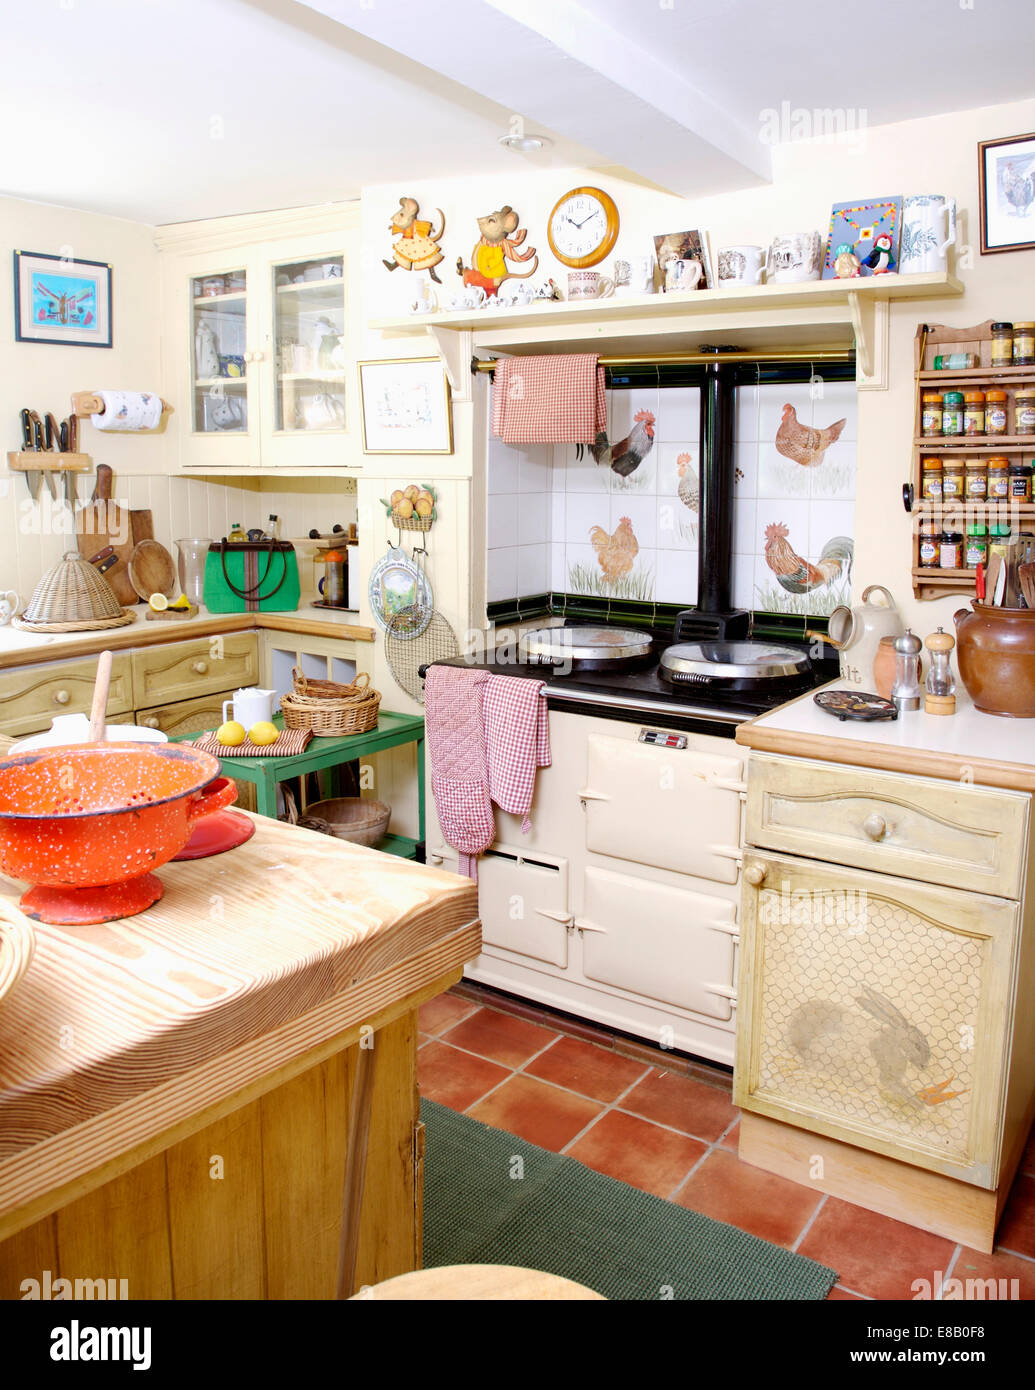 Aga Kitchen Appliances Aga Oven In Cottage Kitchen With Curtain On Cupboard And Hand